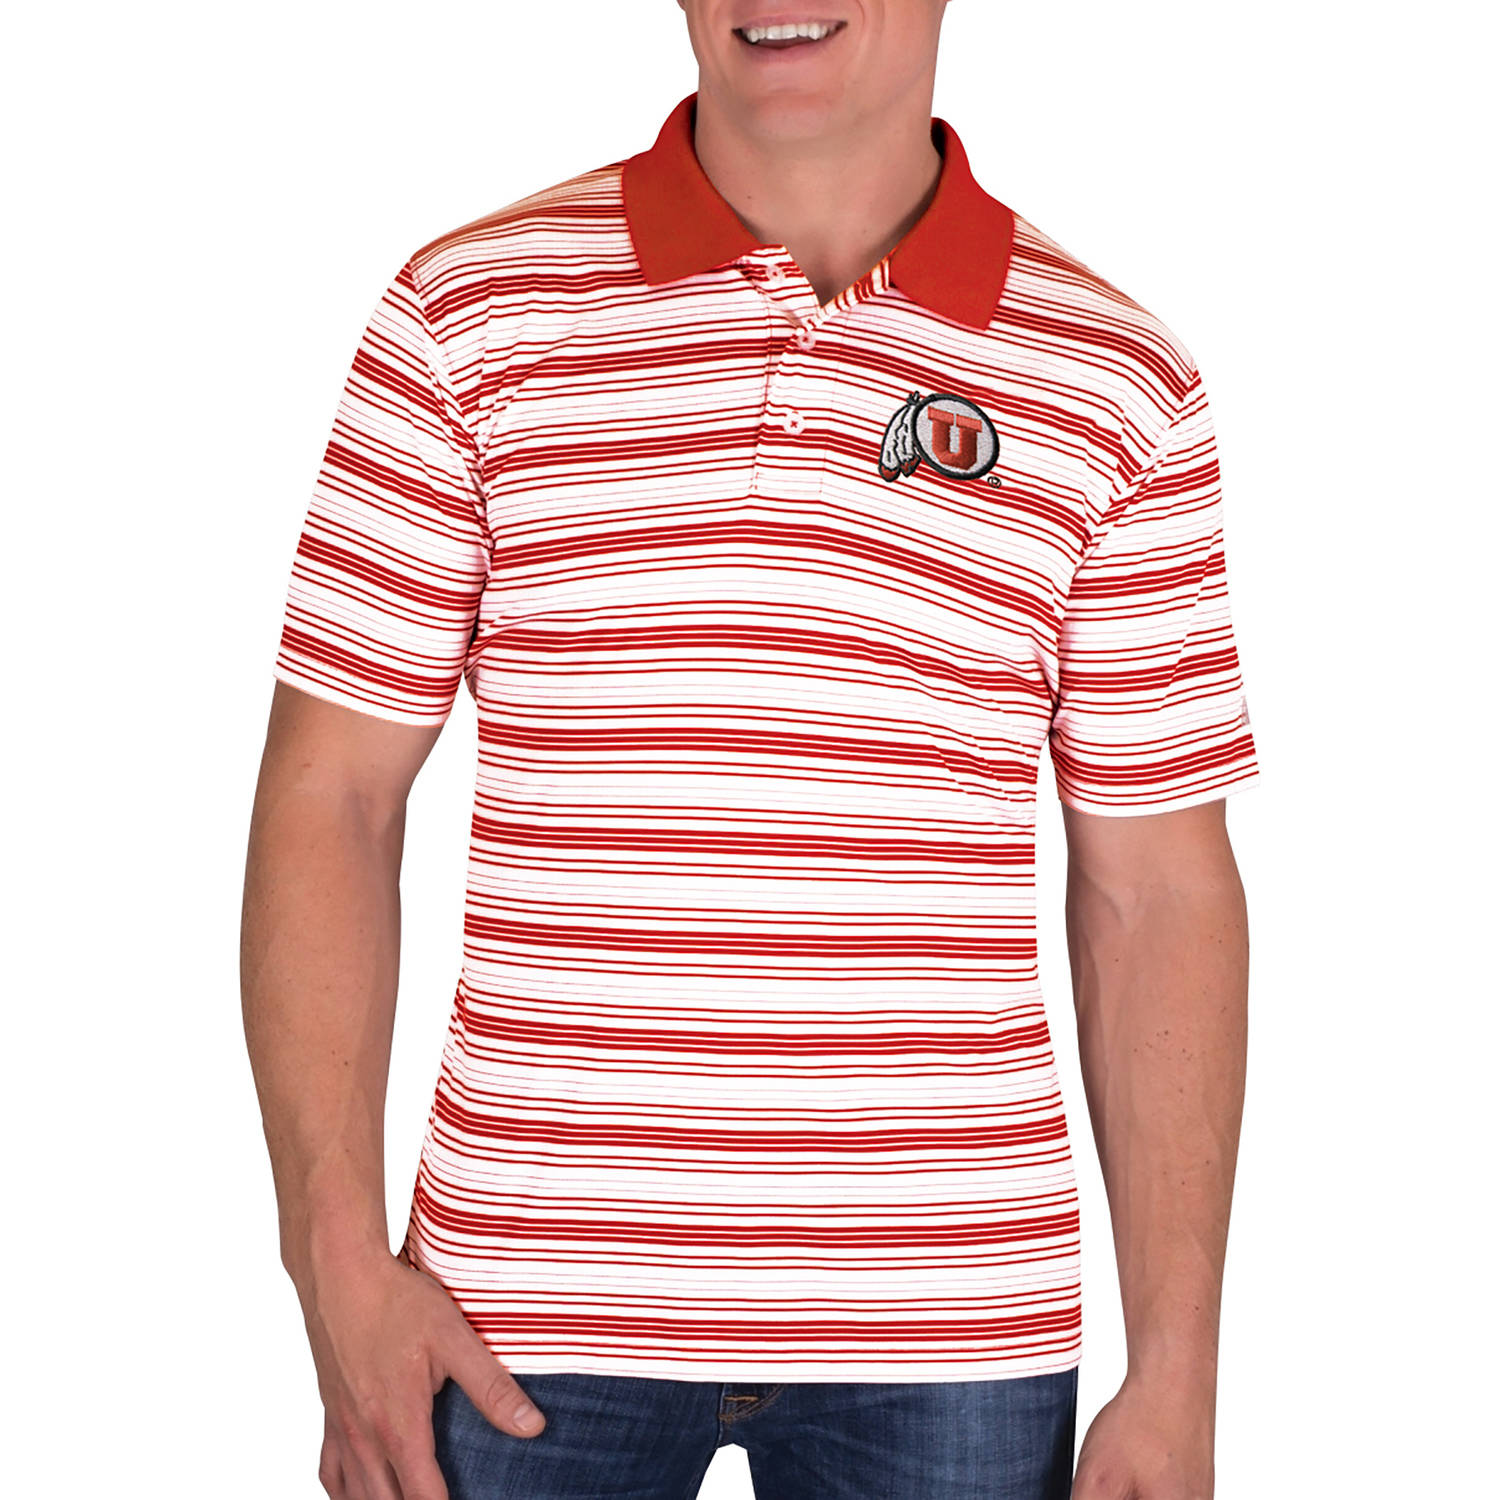 NCAA Utah Utes Men's Classic-Fit Striped Polo Shirt